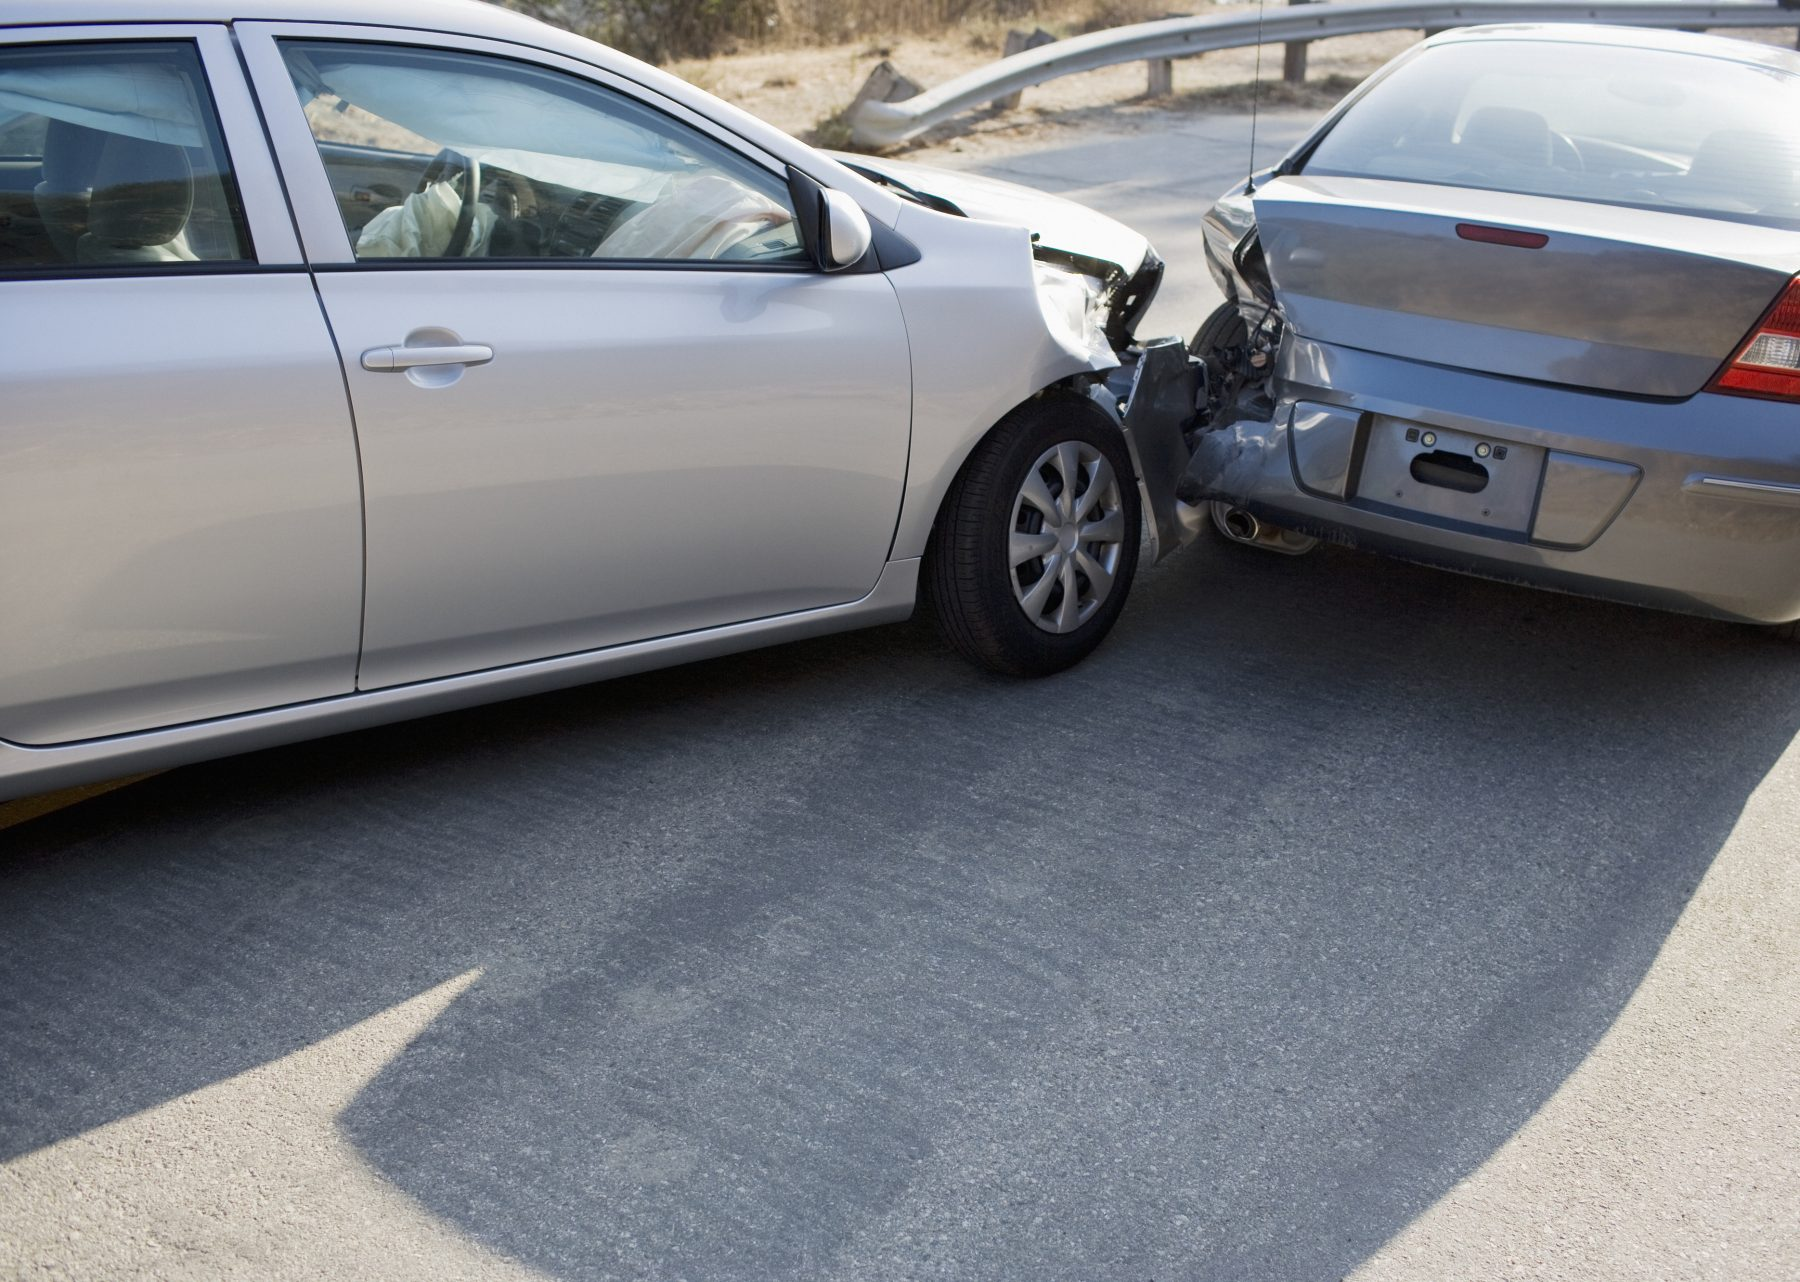 Rear End Collision: Who's at fault?